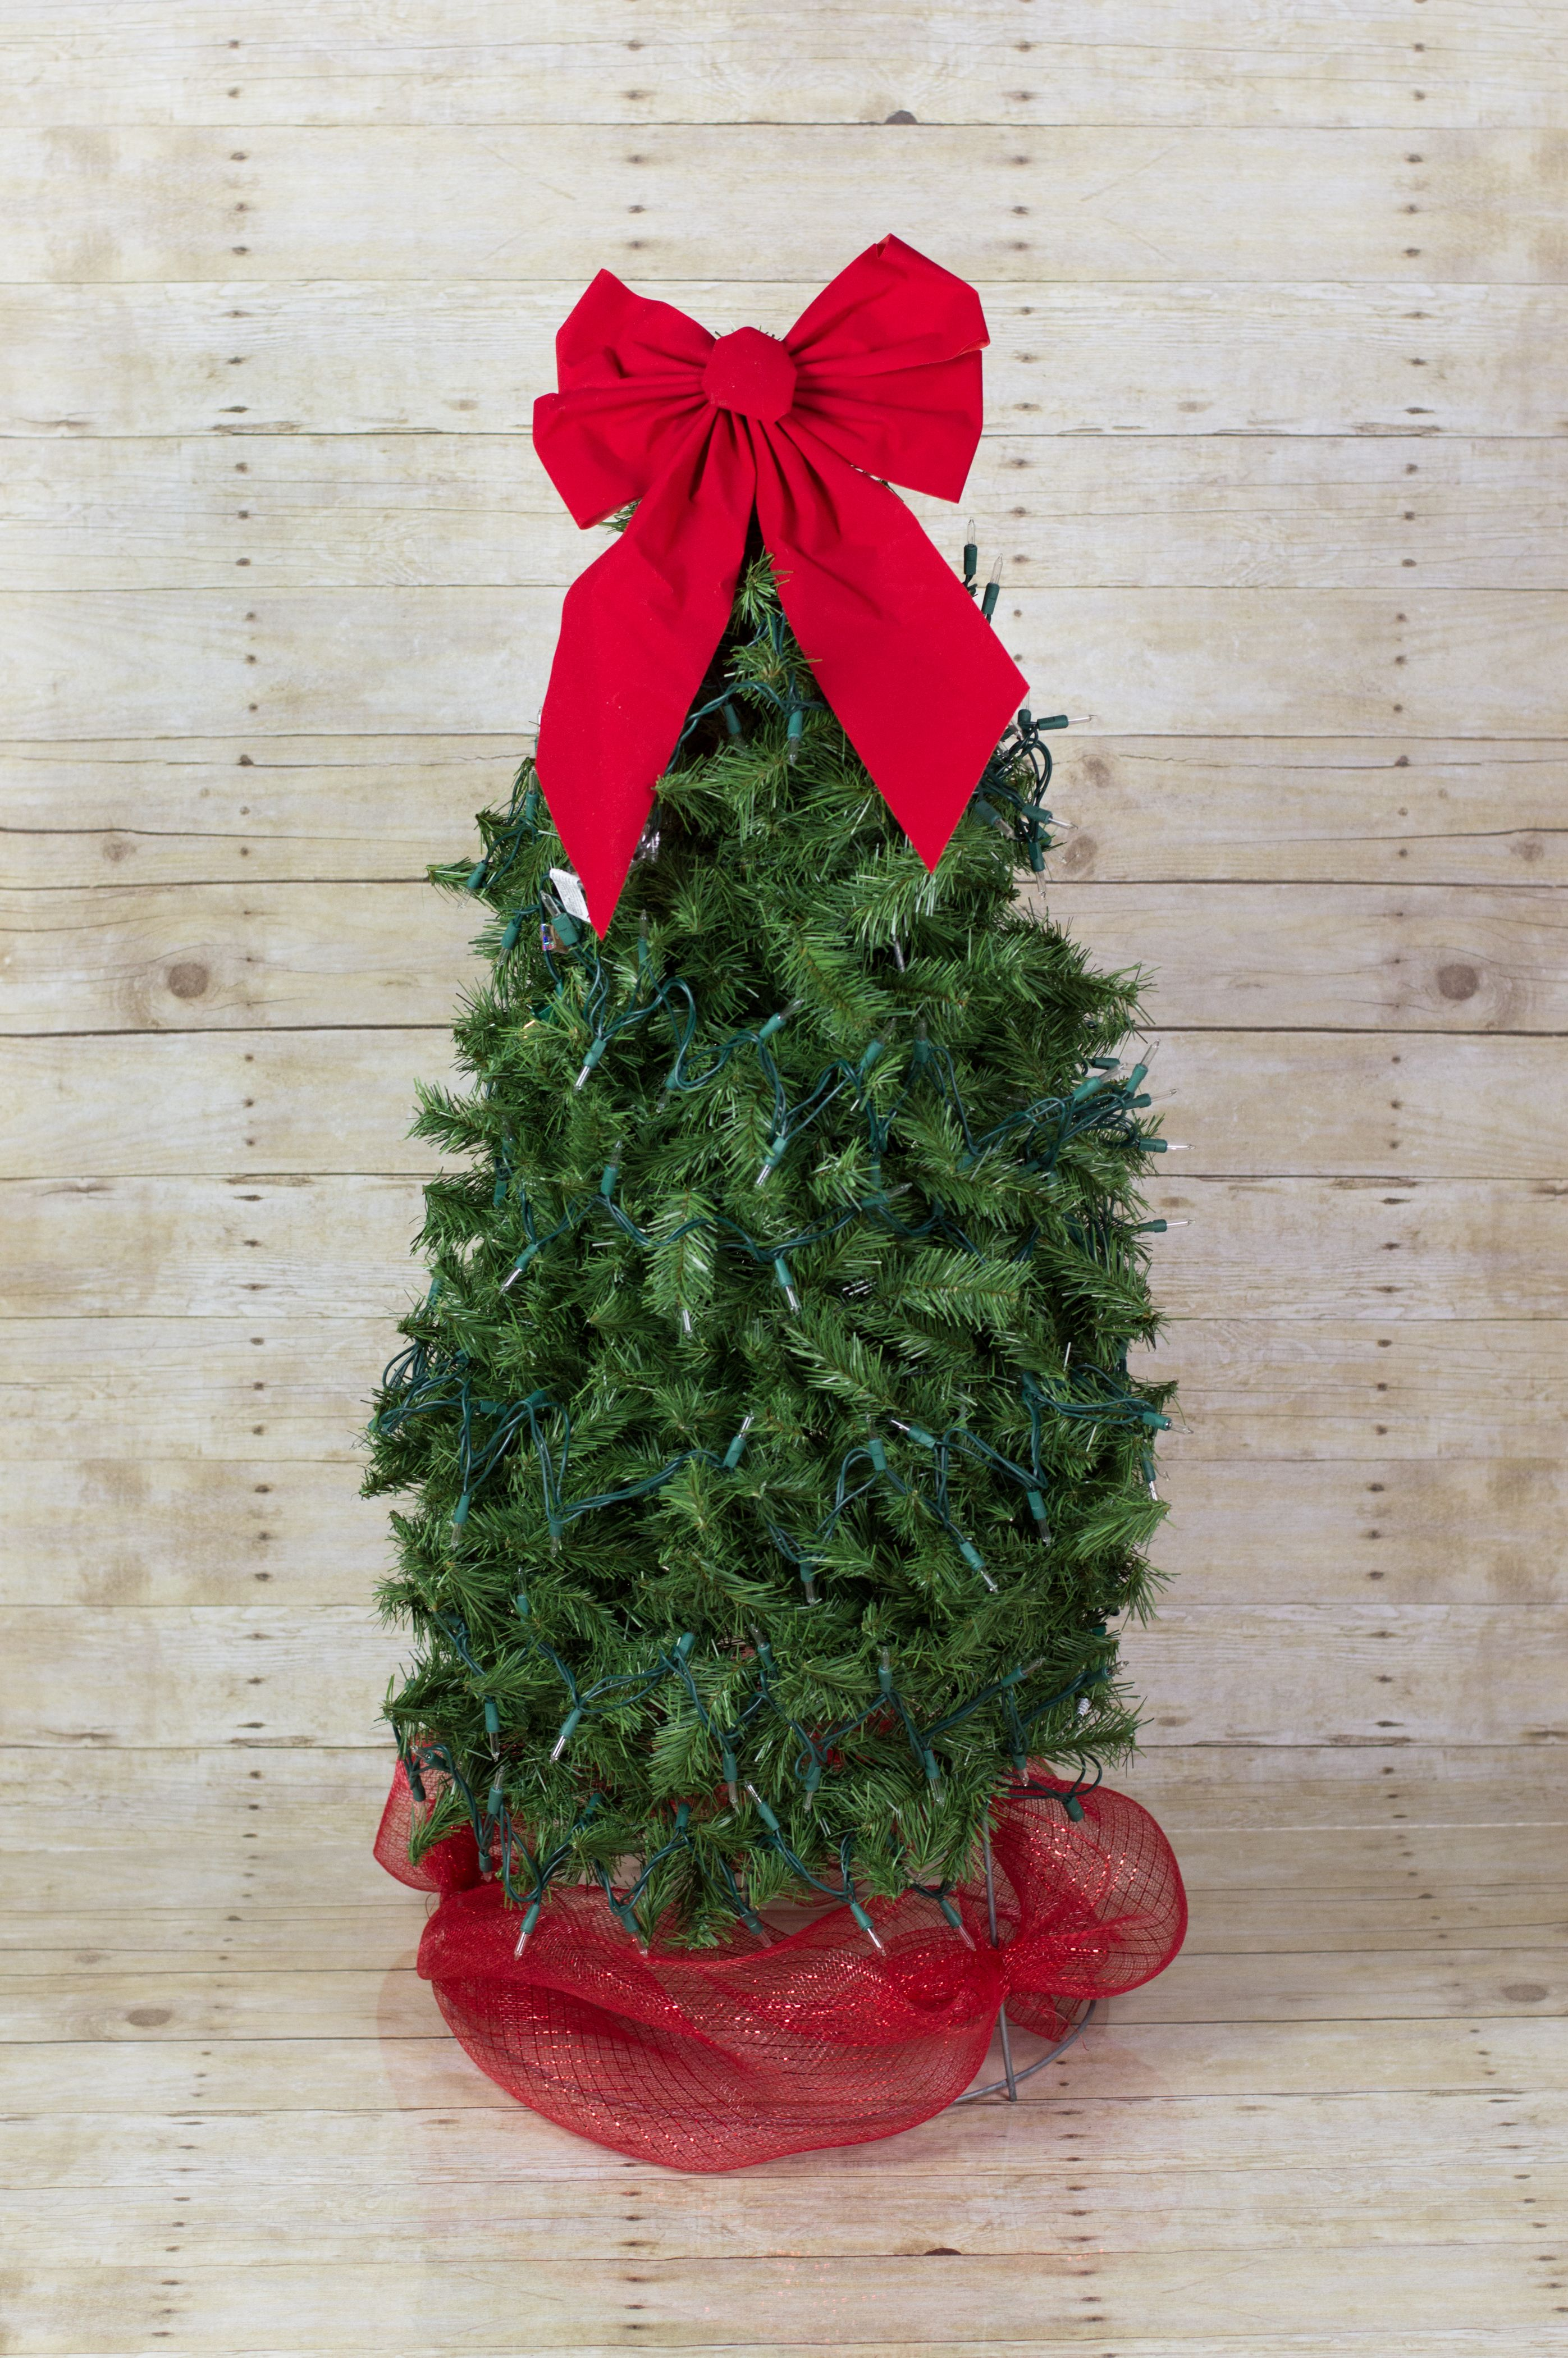 tomato cage christmas tree assented with white light red bow and red mesh for skirt - Tomato Cage Christmas Tree With Mesh